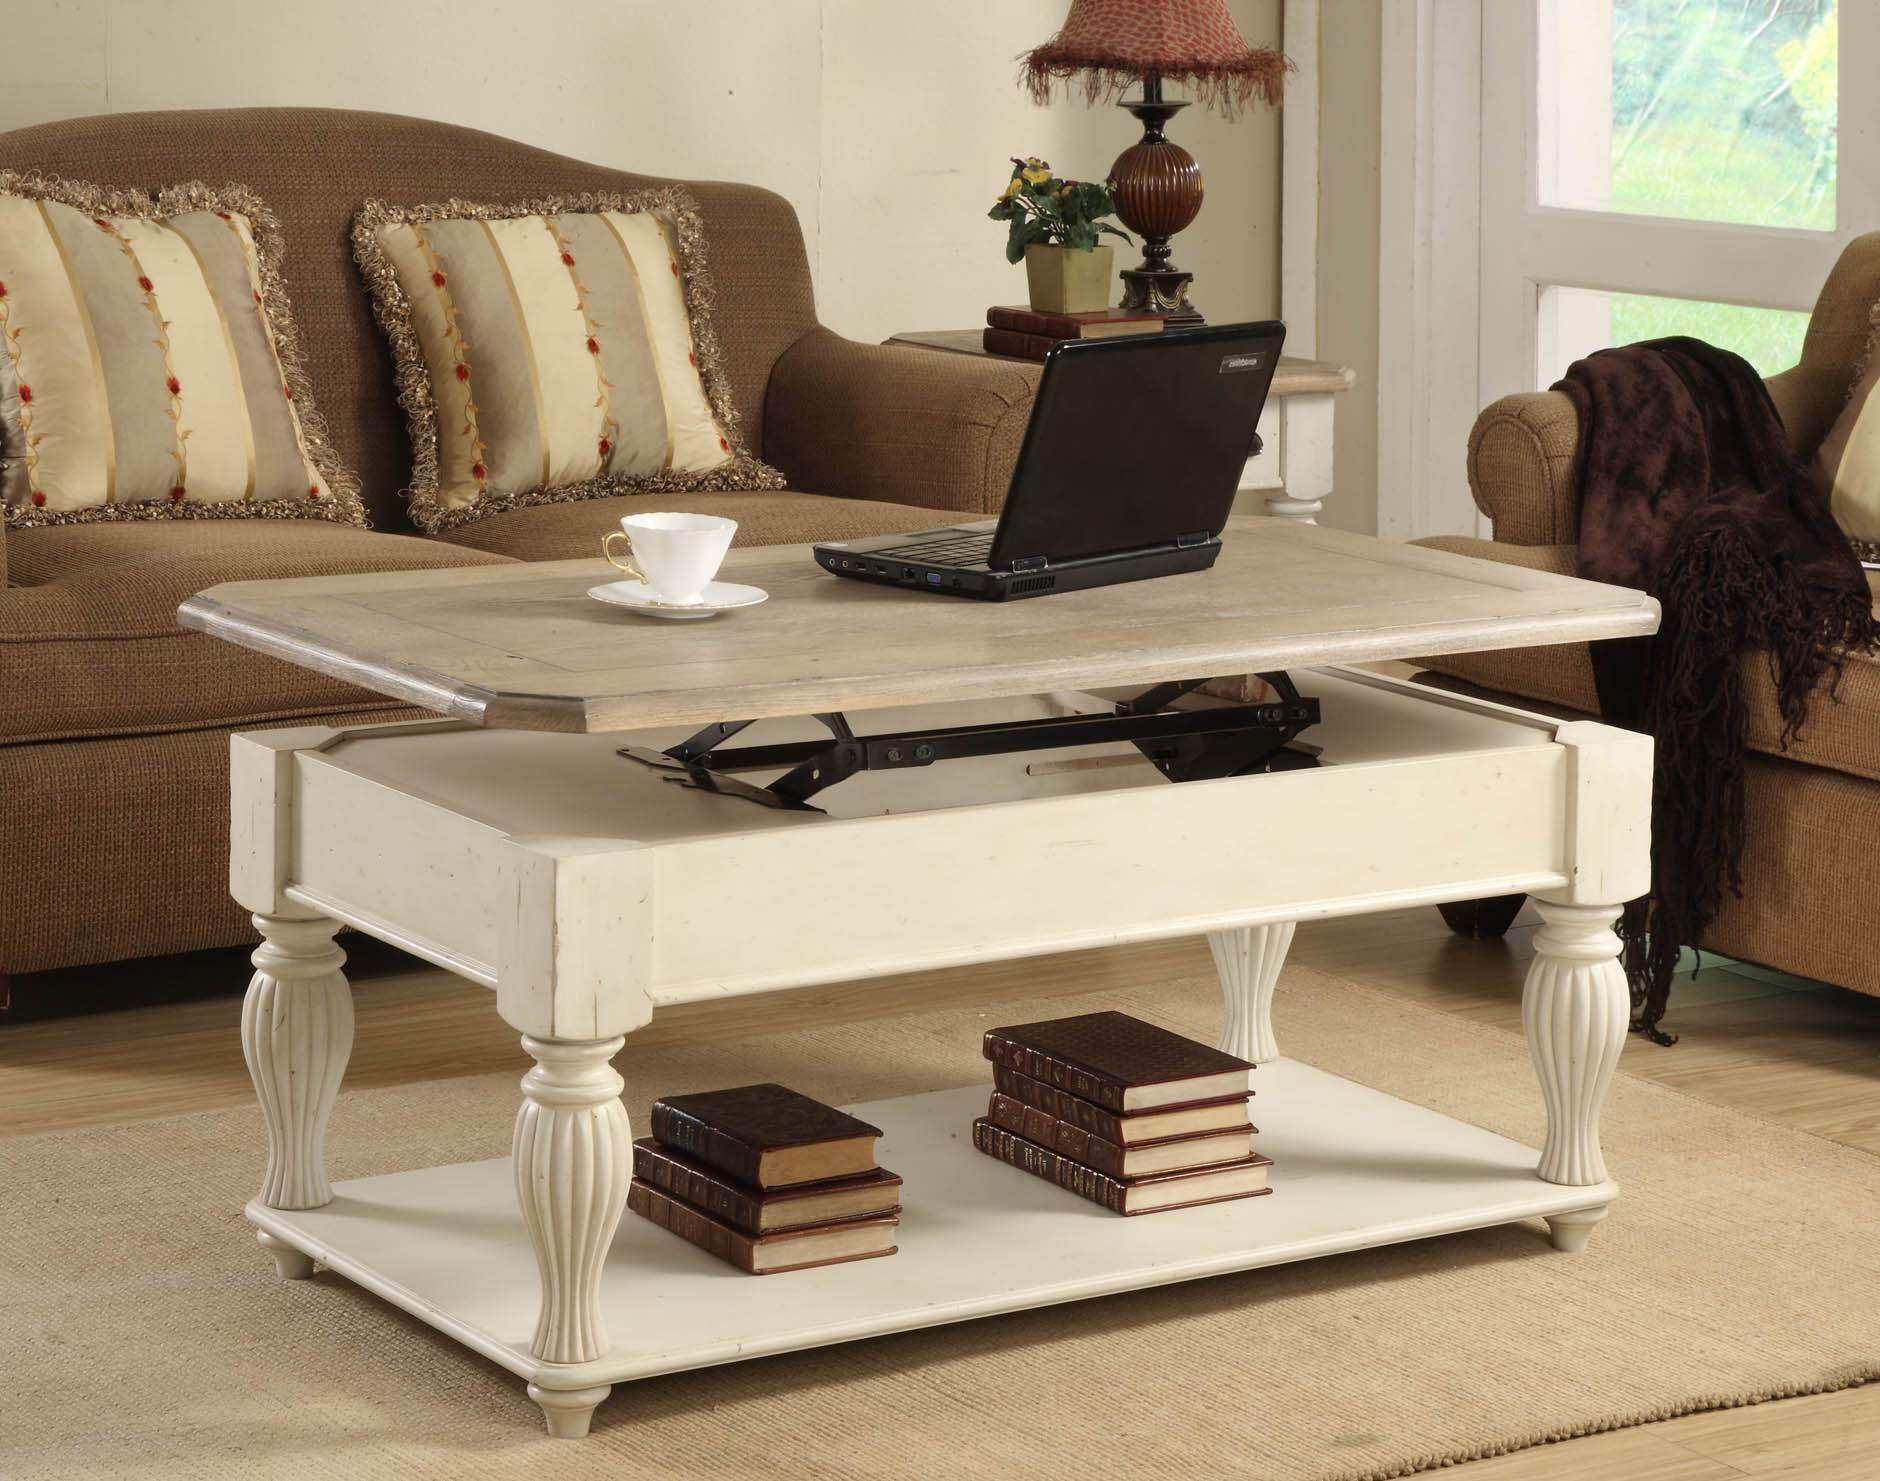 Lift up coffee table ikea maximizing practicality with lift up coffee table from ikea coffe Lift up coffee table ikea